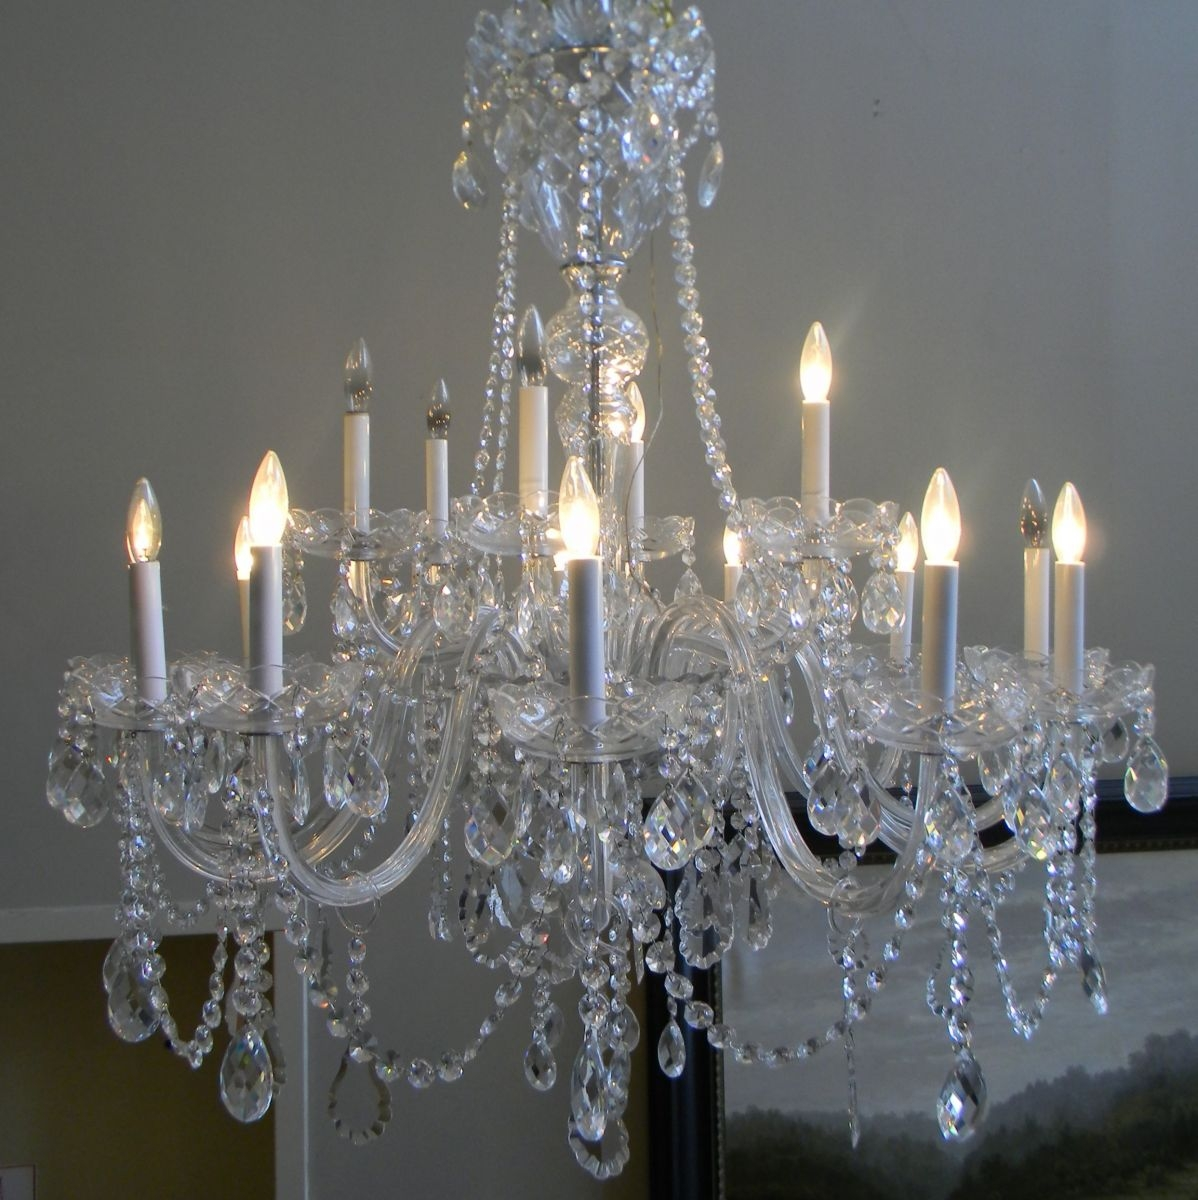 Popular Photo of Lead Crystal Chandelier